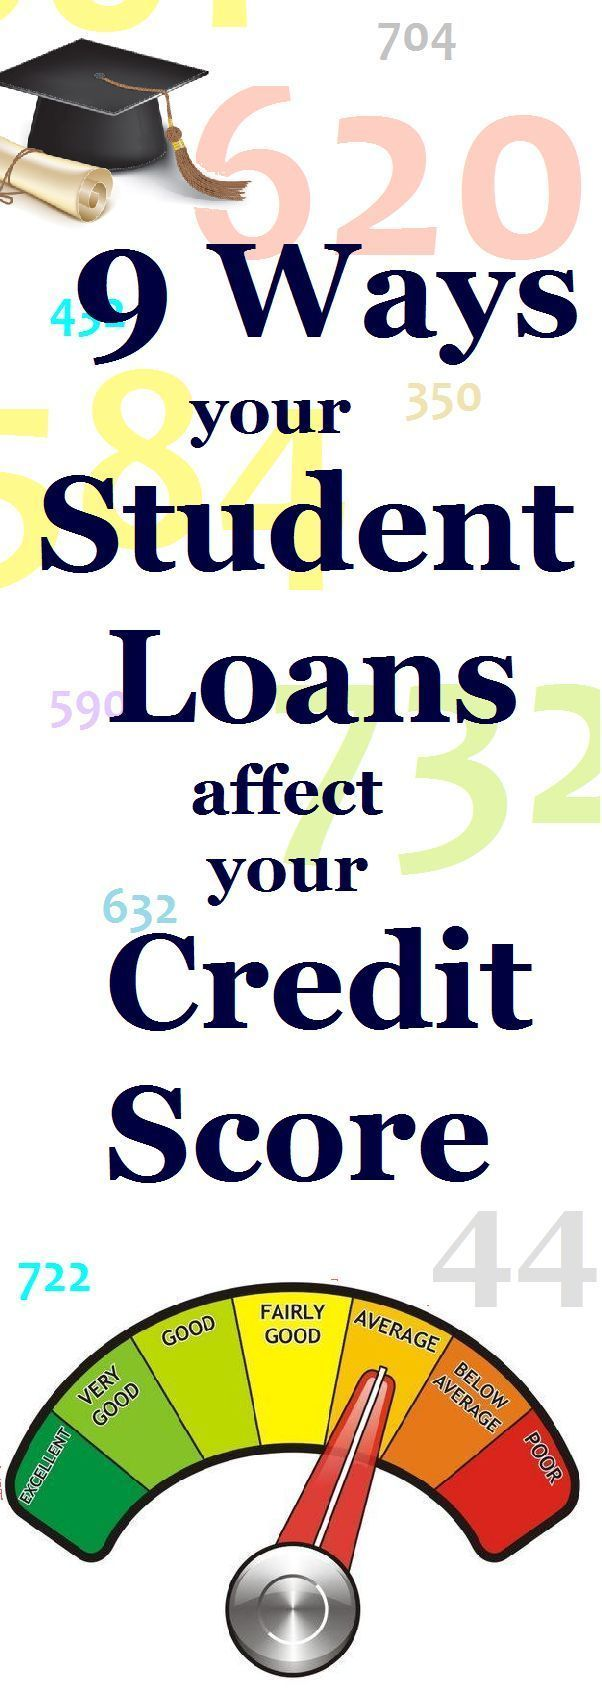 How do your student loans affect your credit score? Pinned by student-loan-cons... Pay off Debt, Student Loan Debt #debt Student Loans Payoff #StudentLoans #debt